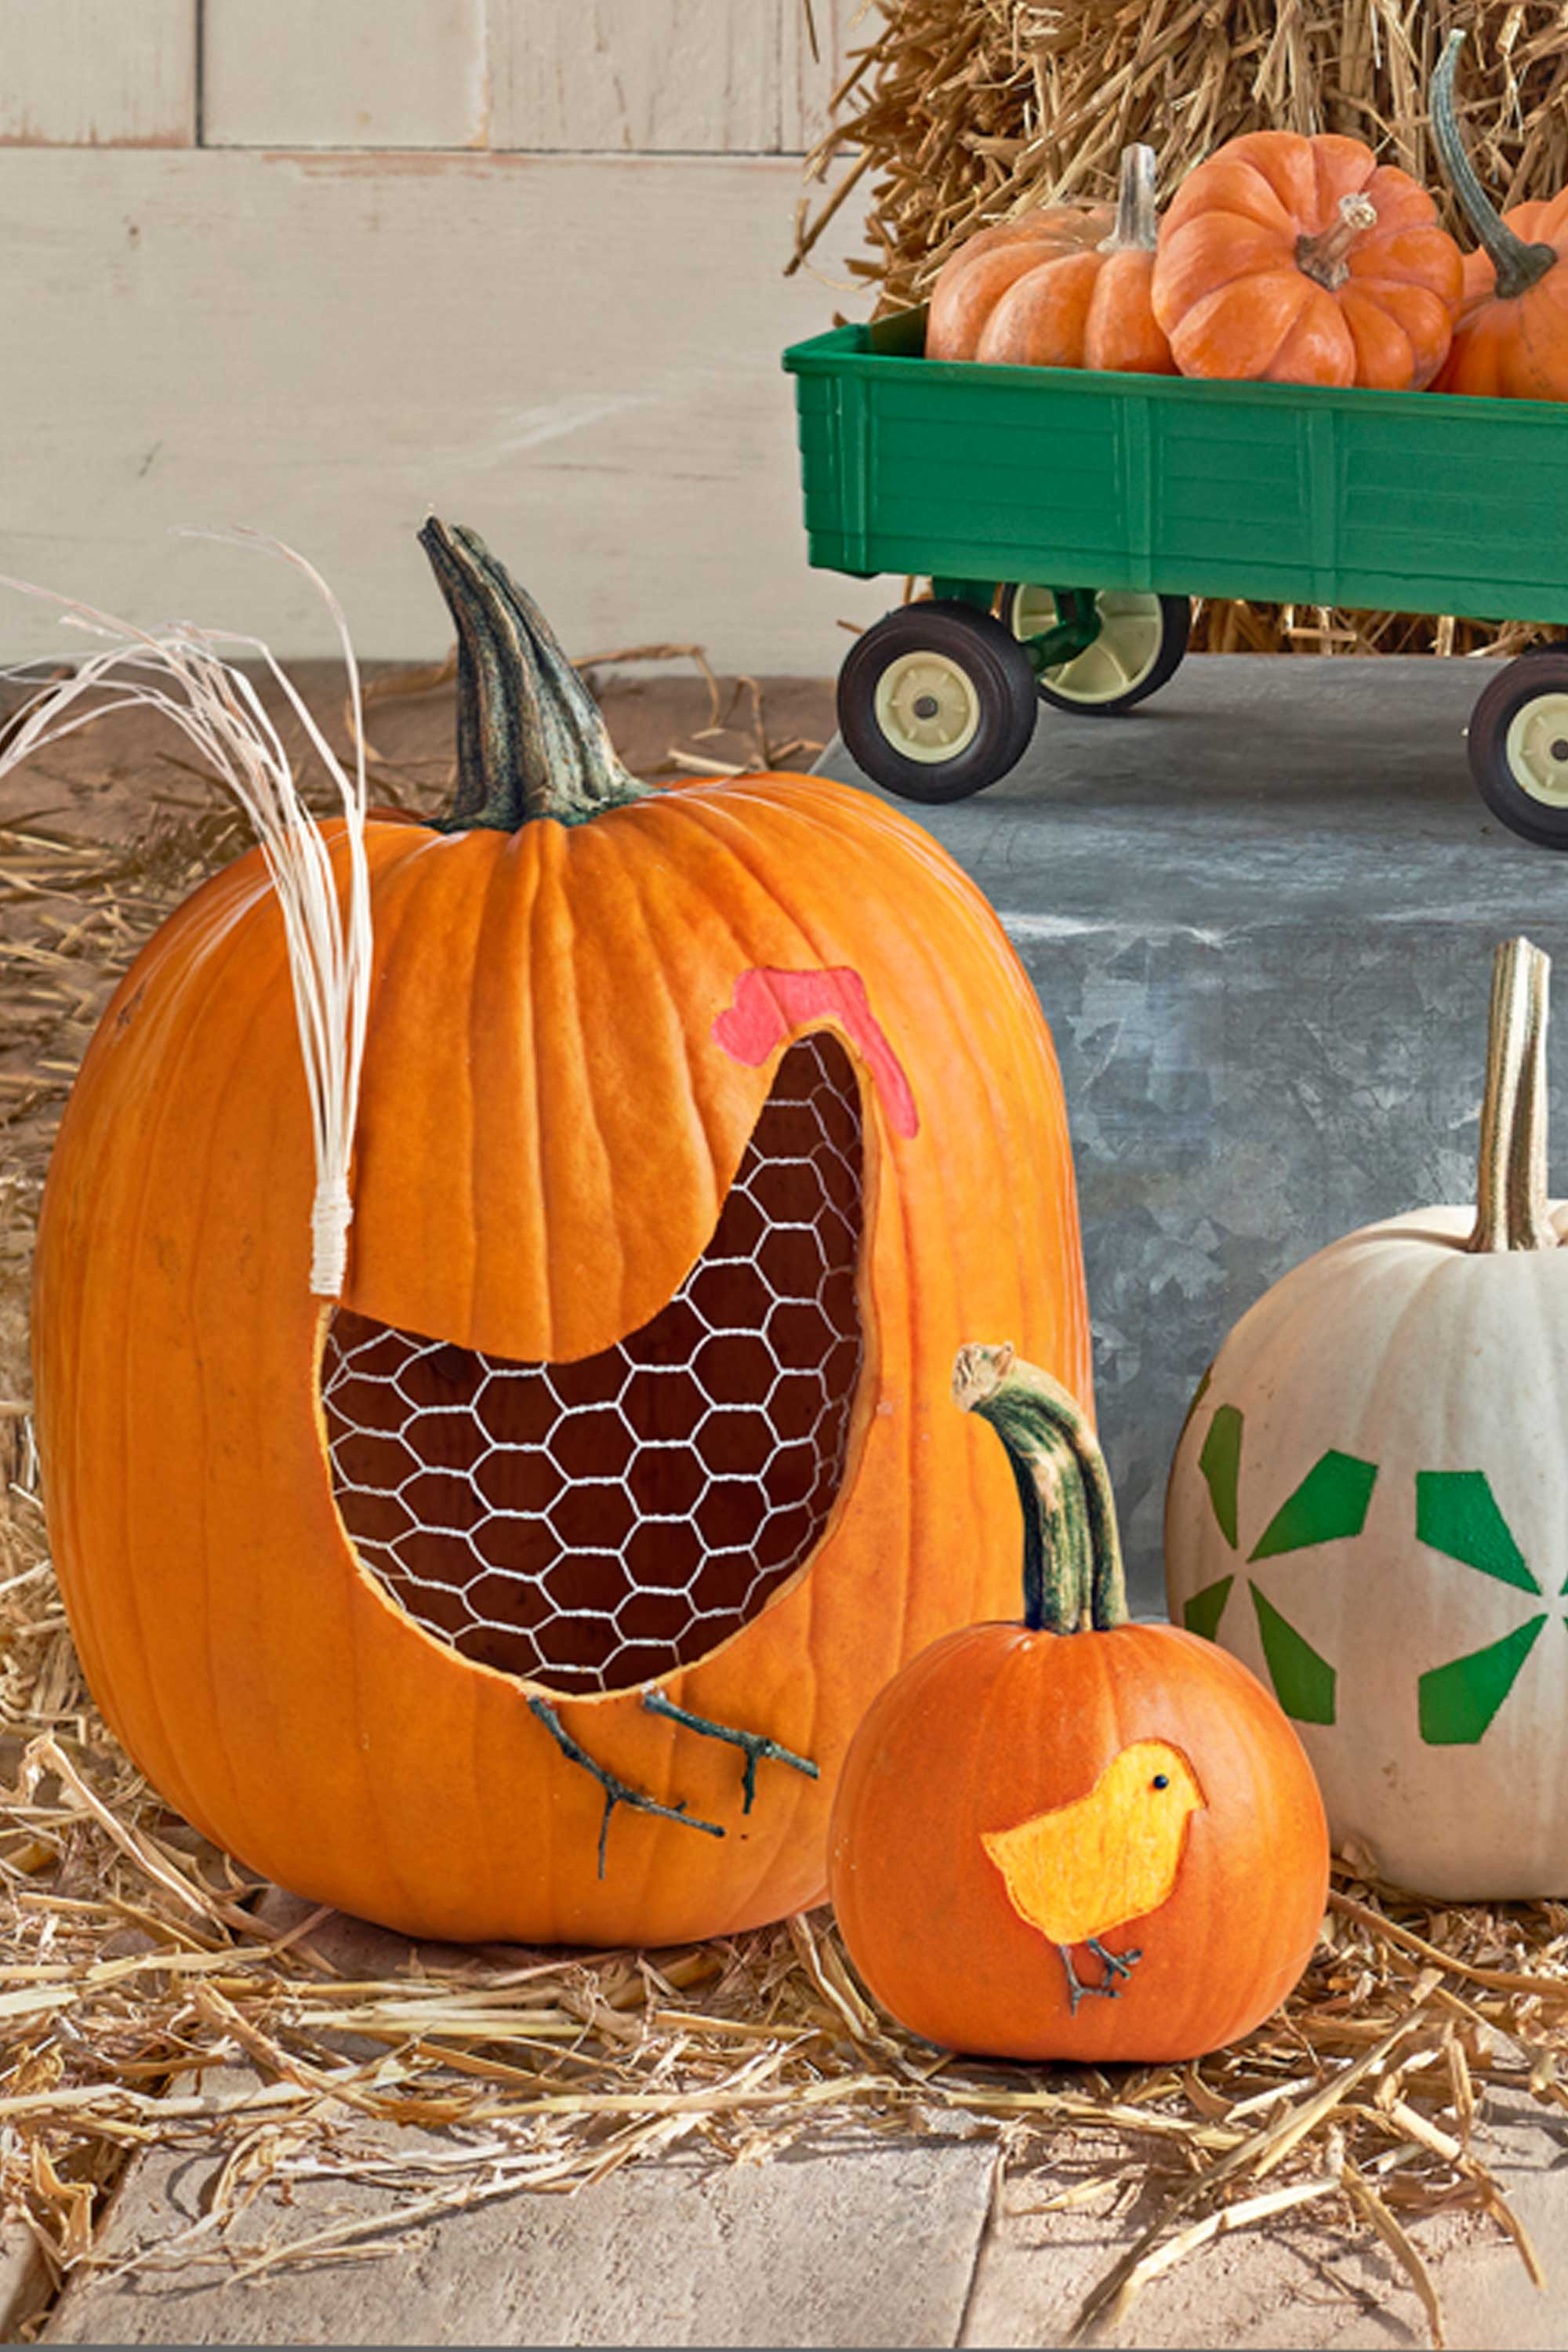 45 Pumpkin Carving Ideas Cool Patterns And Designs For